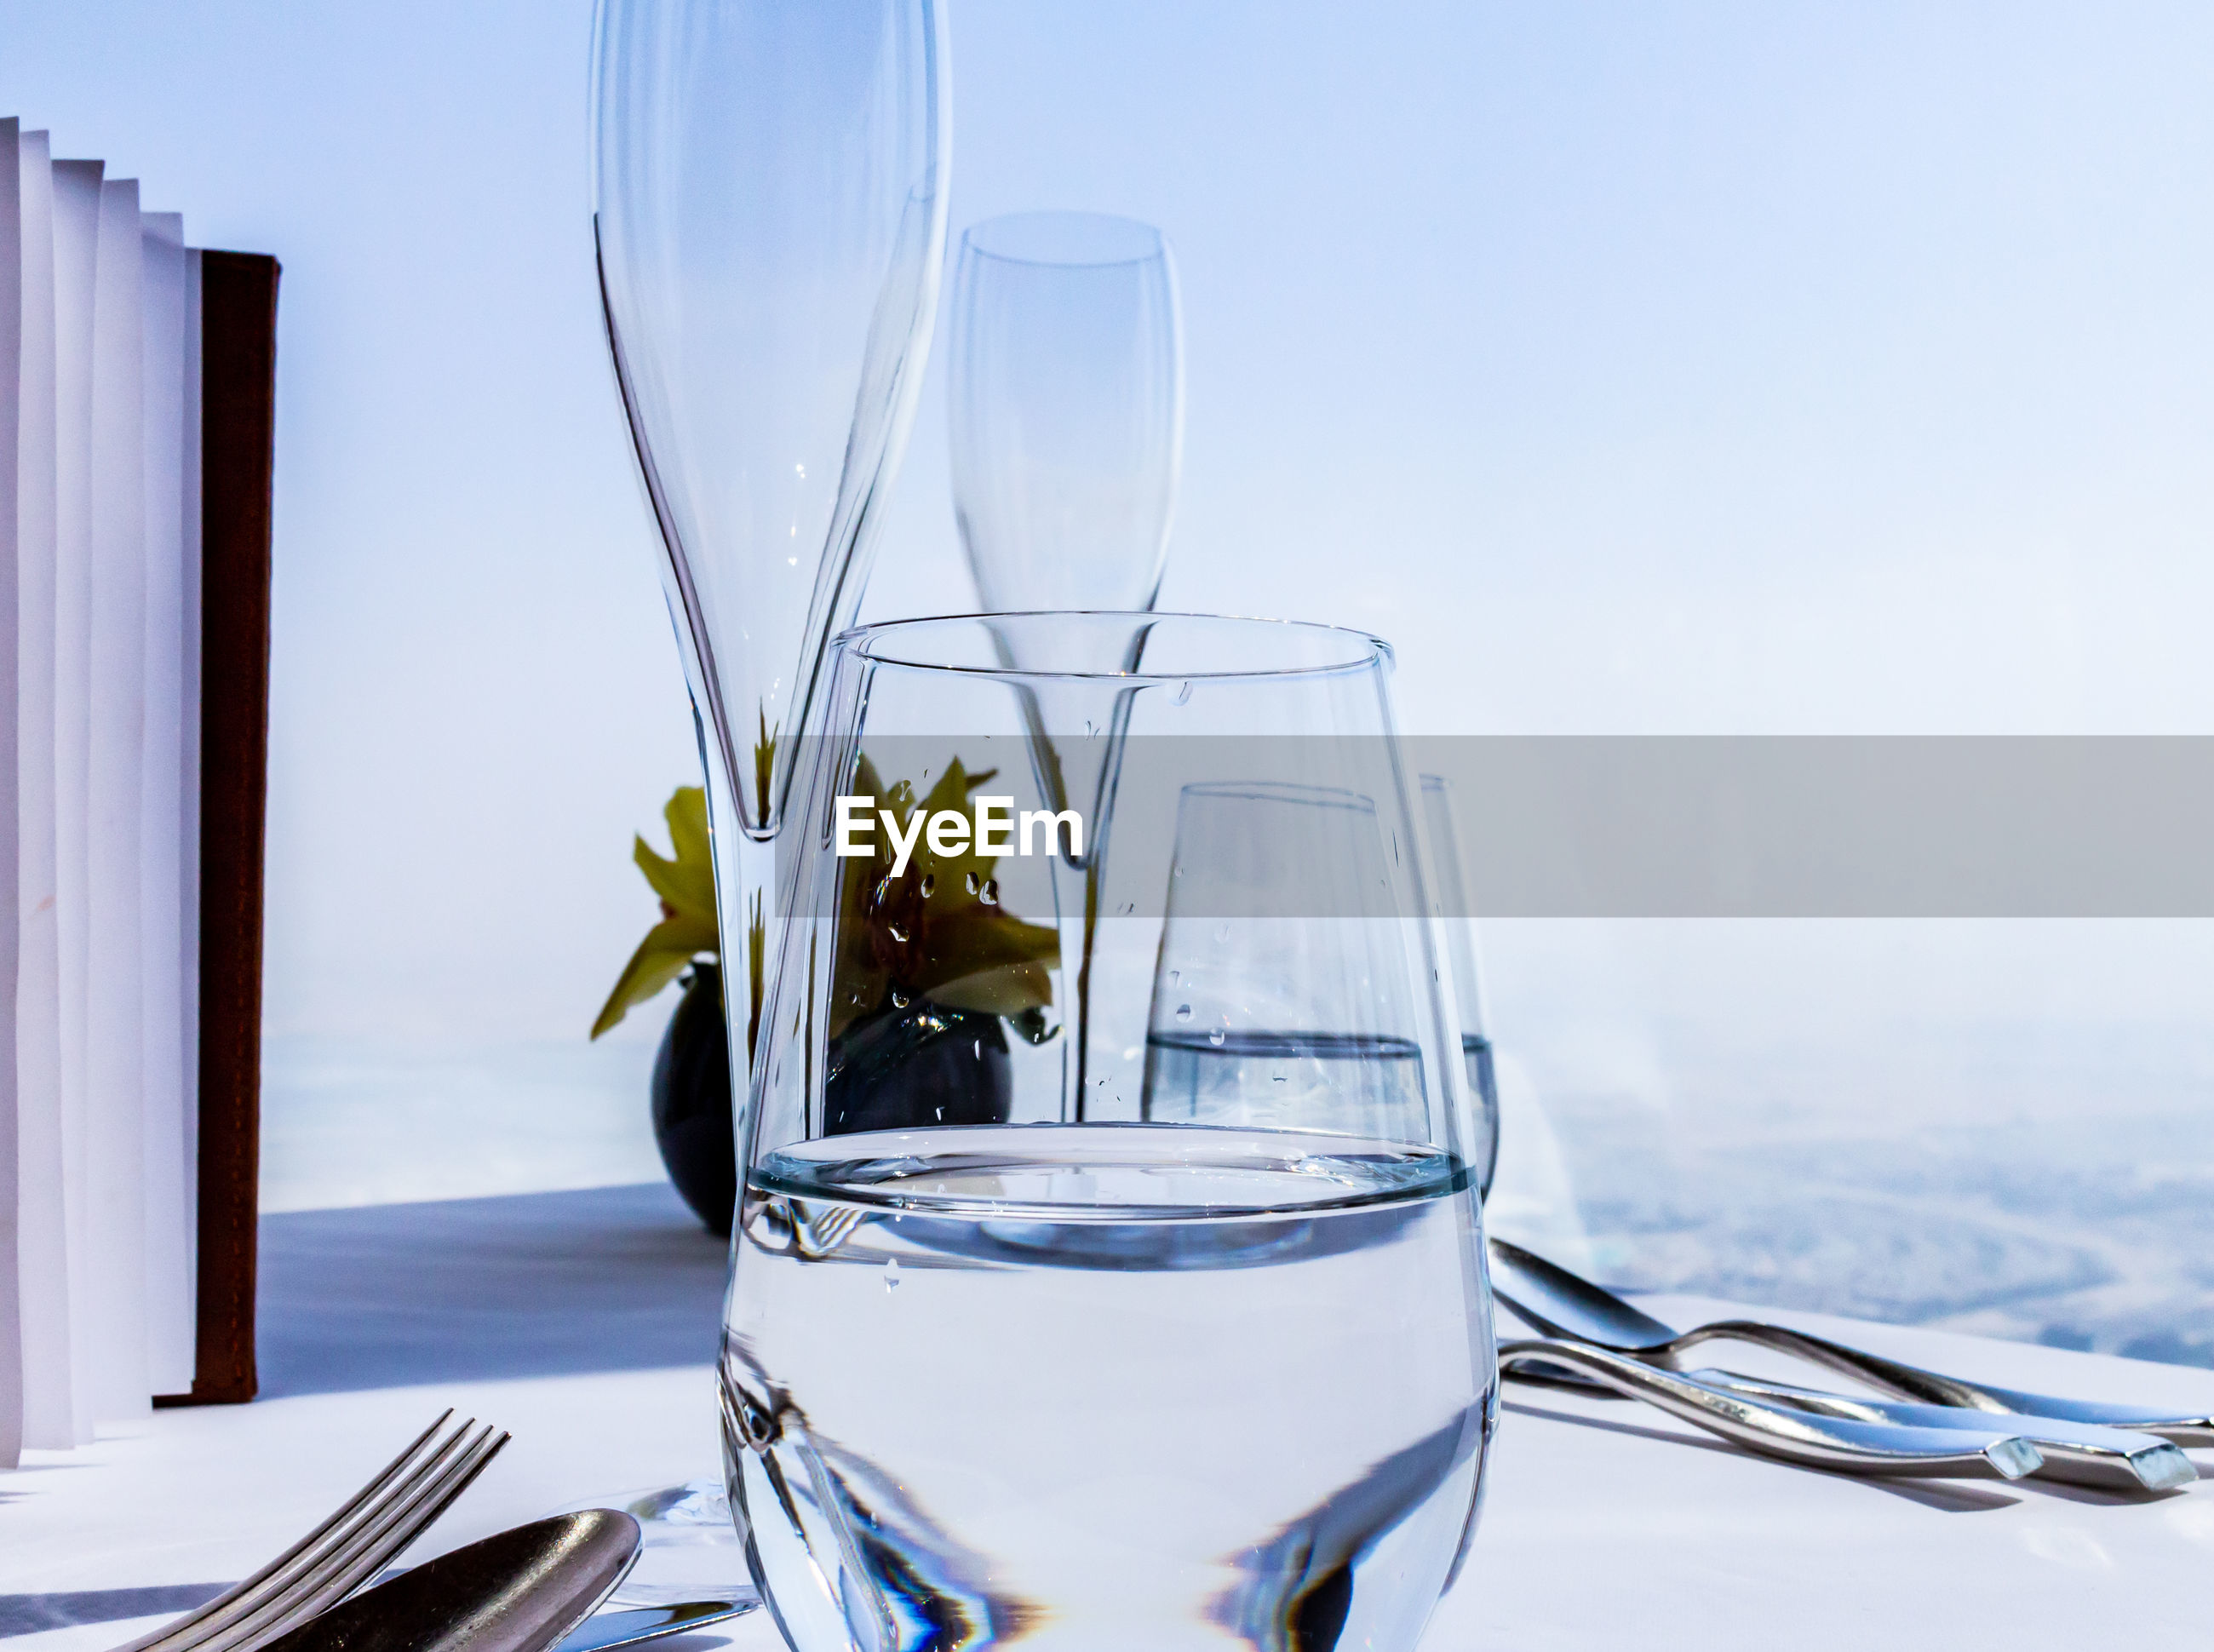 CLOSE-UP OF DRINK ON TABLE AGAINST GLASS